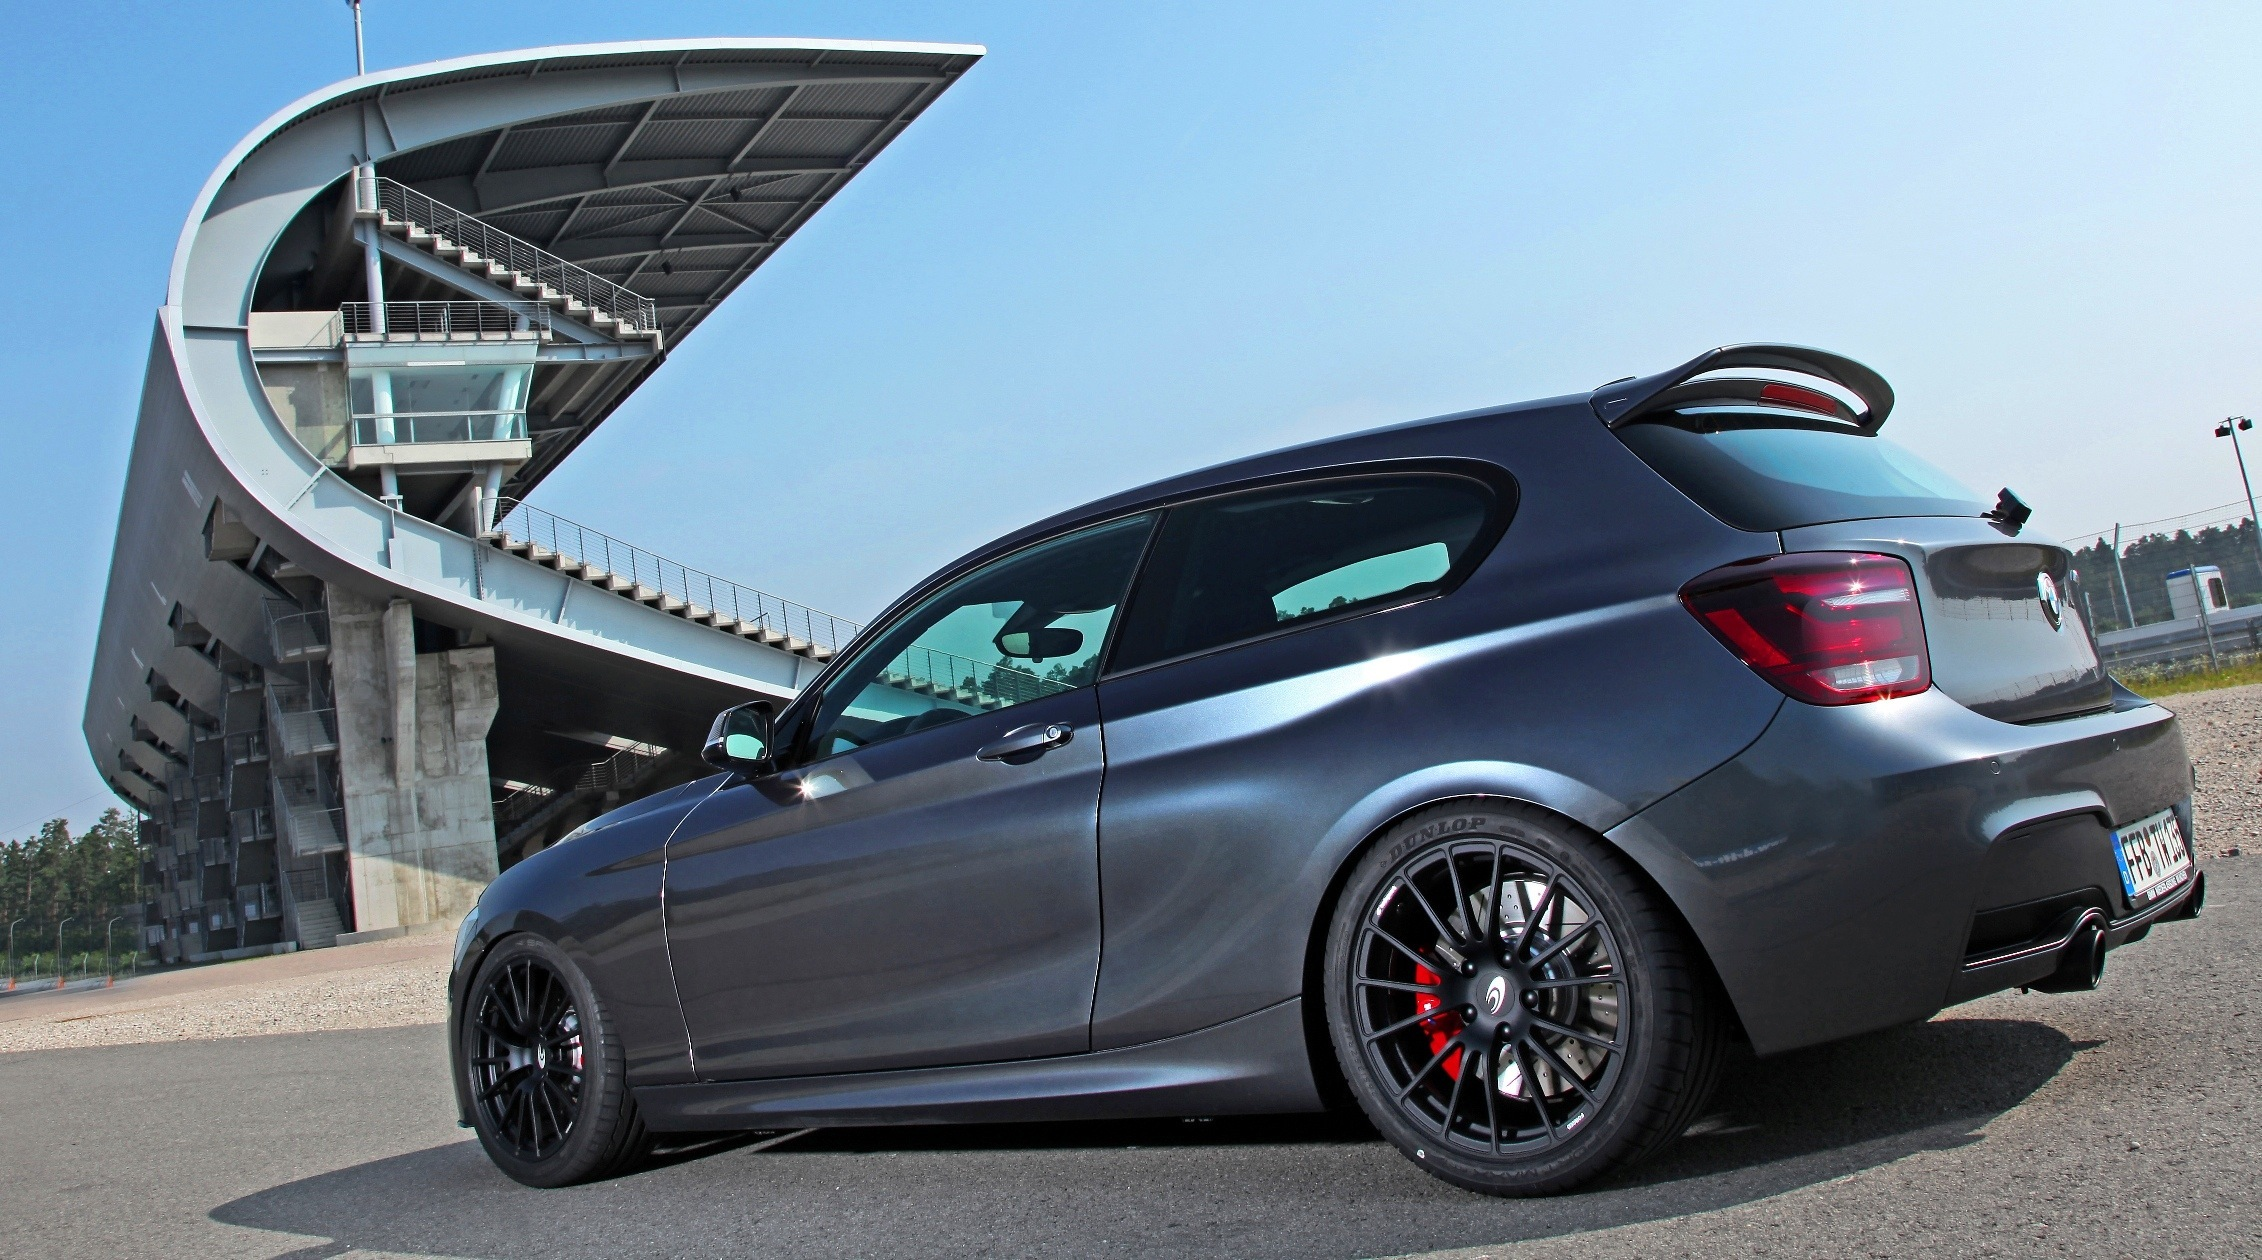 180mph Custom Wagons Bbm 330d Touring And Bmw M135i By